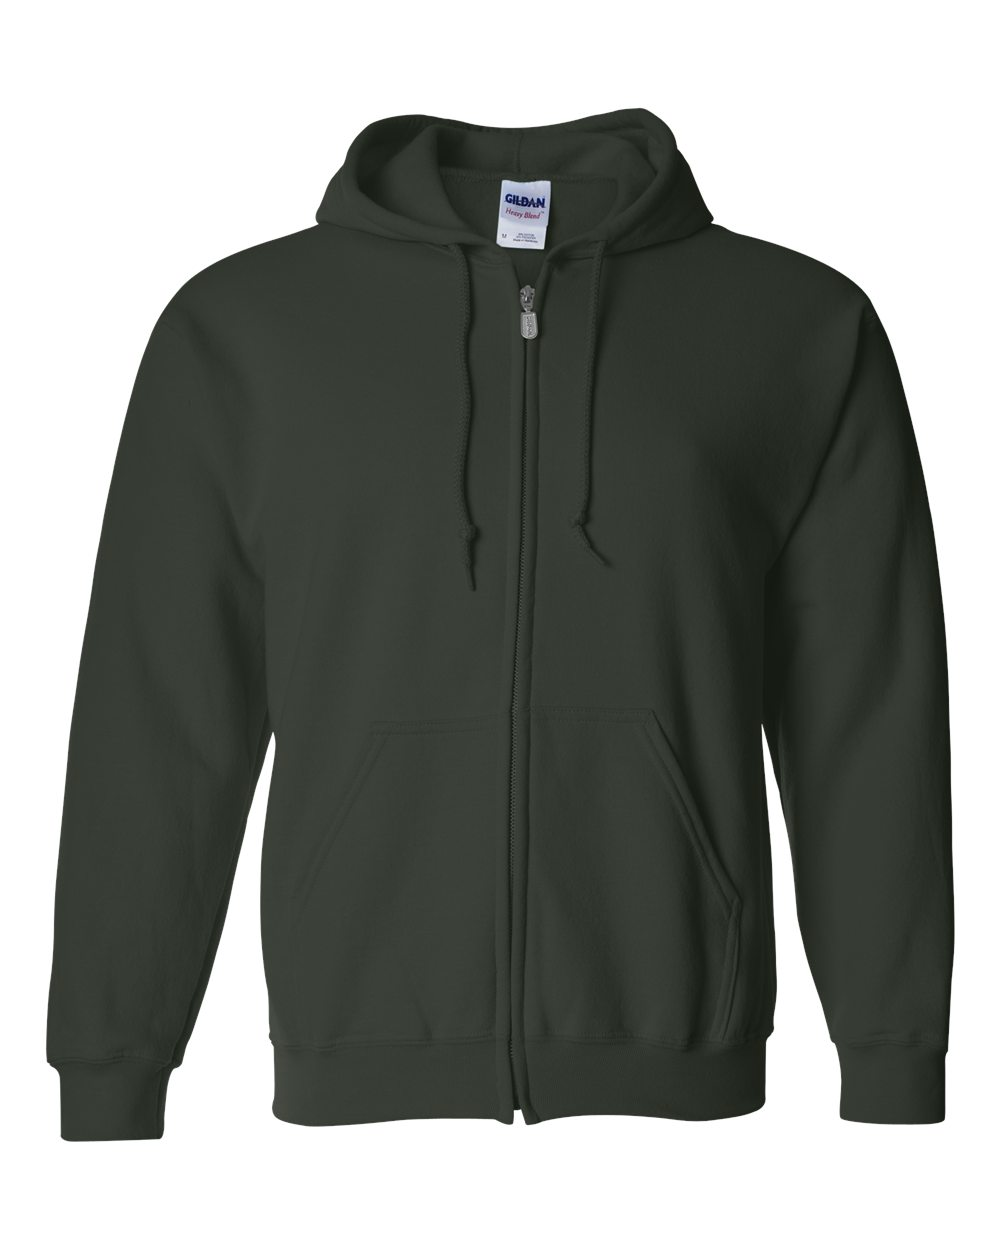 Heavy Blend Hooded Sweatshirt – Full-Zip